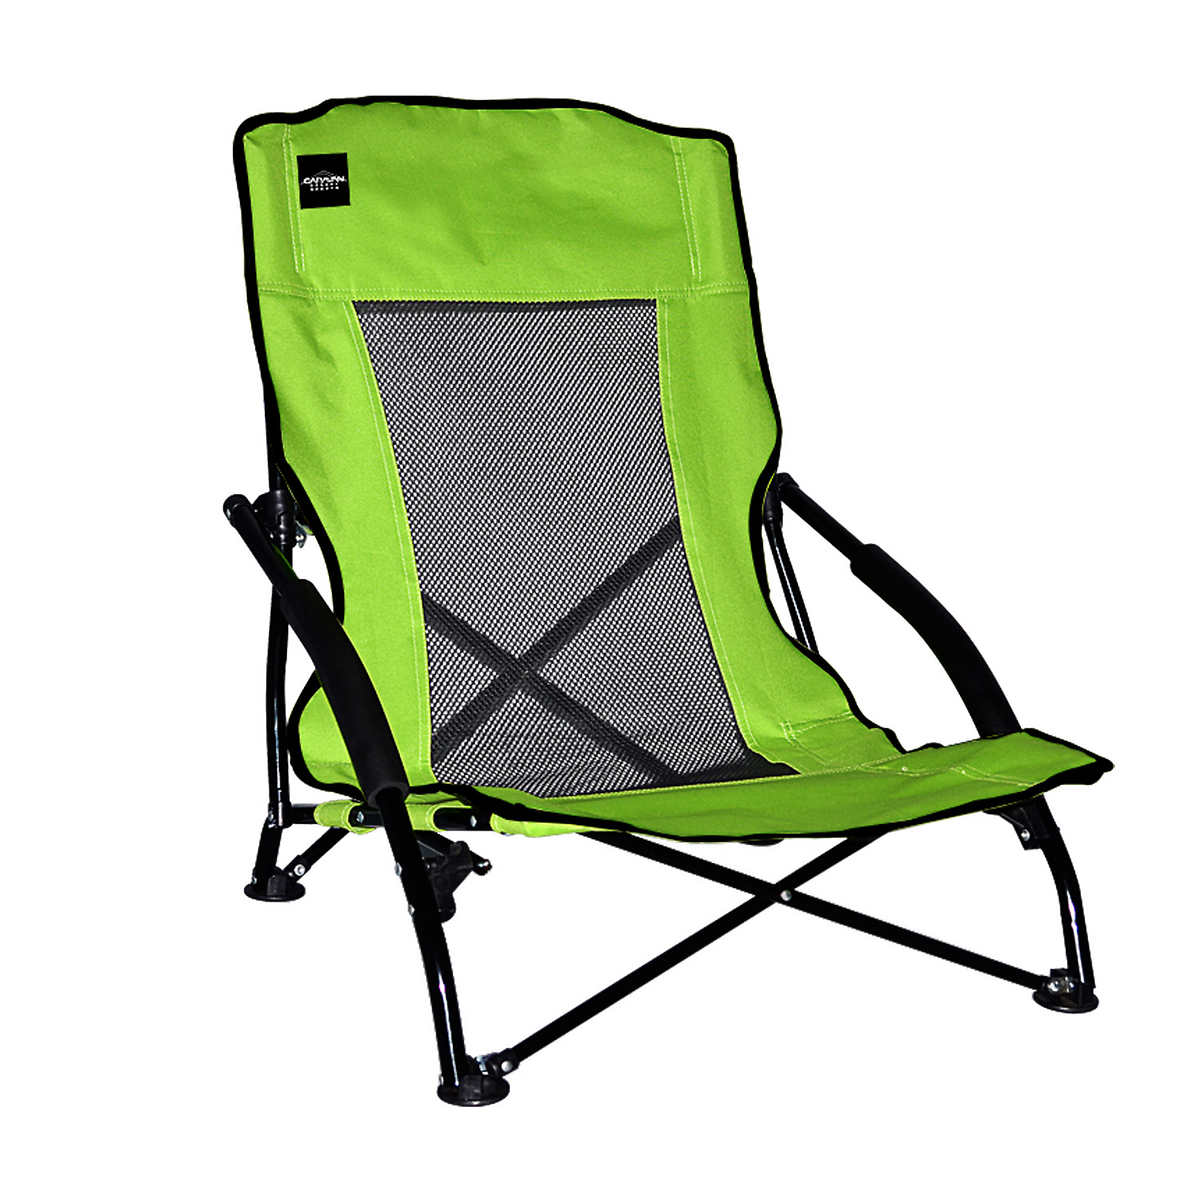 Camping Chairs Costco